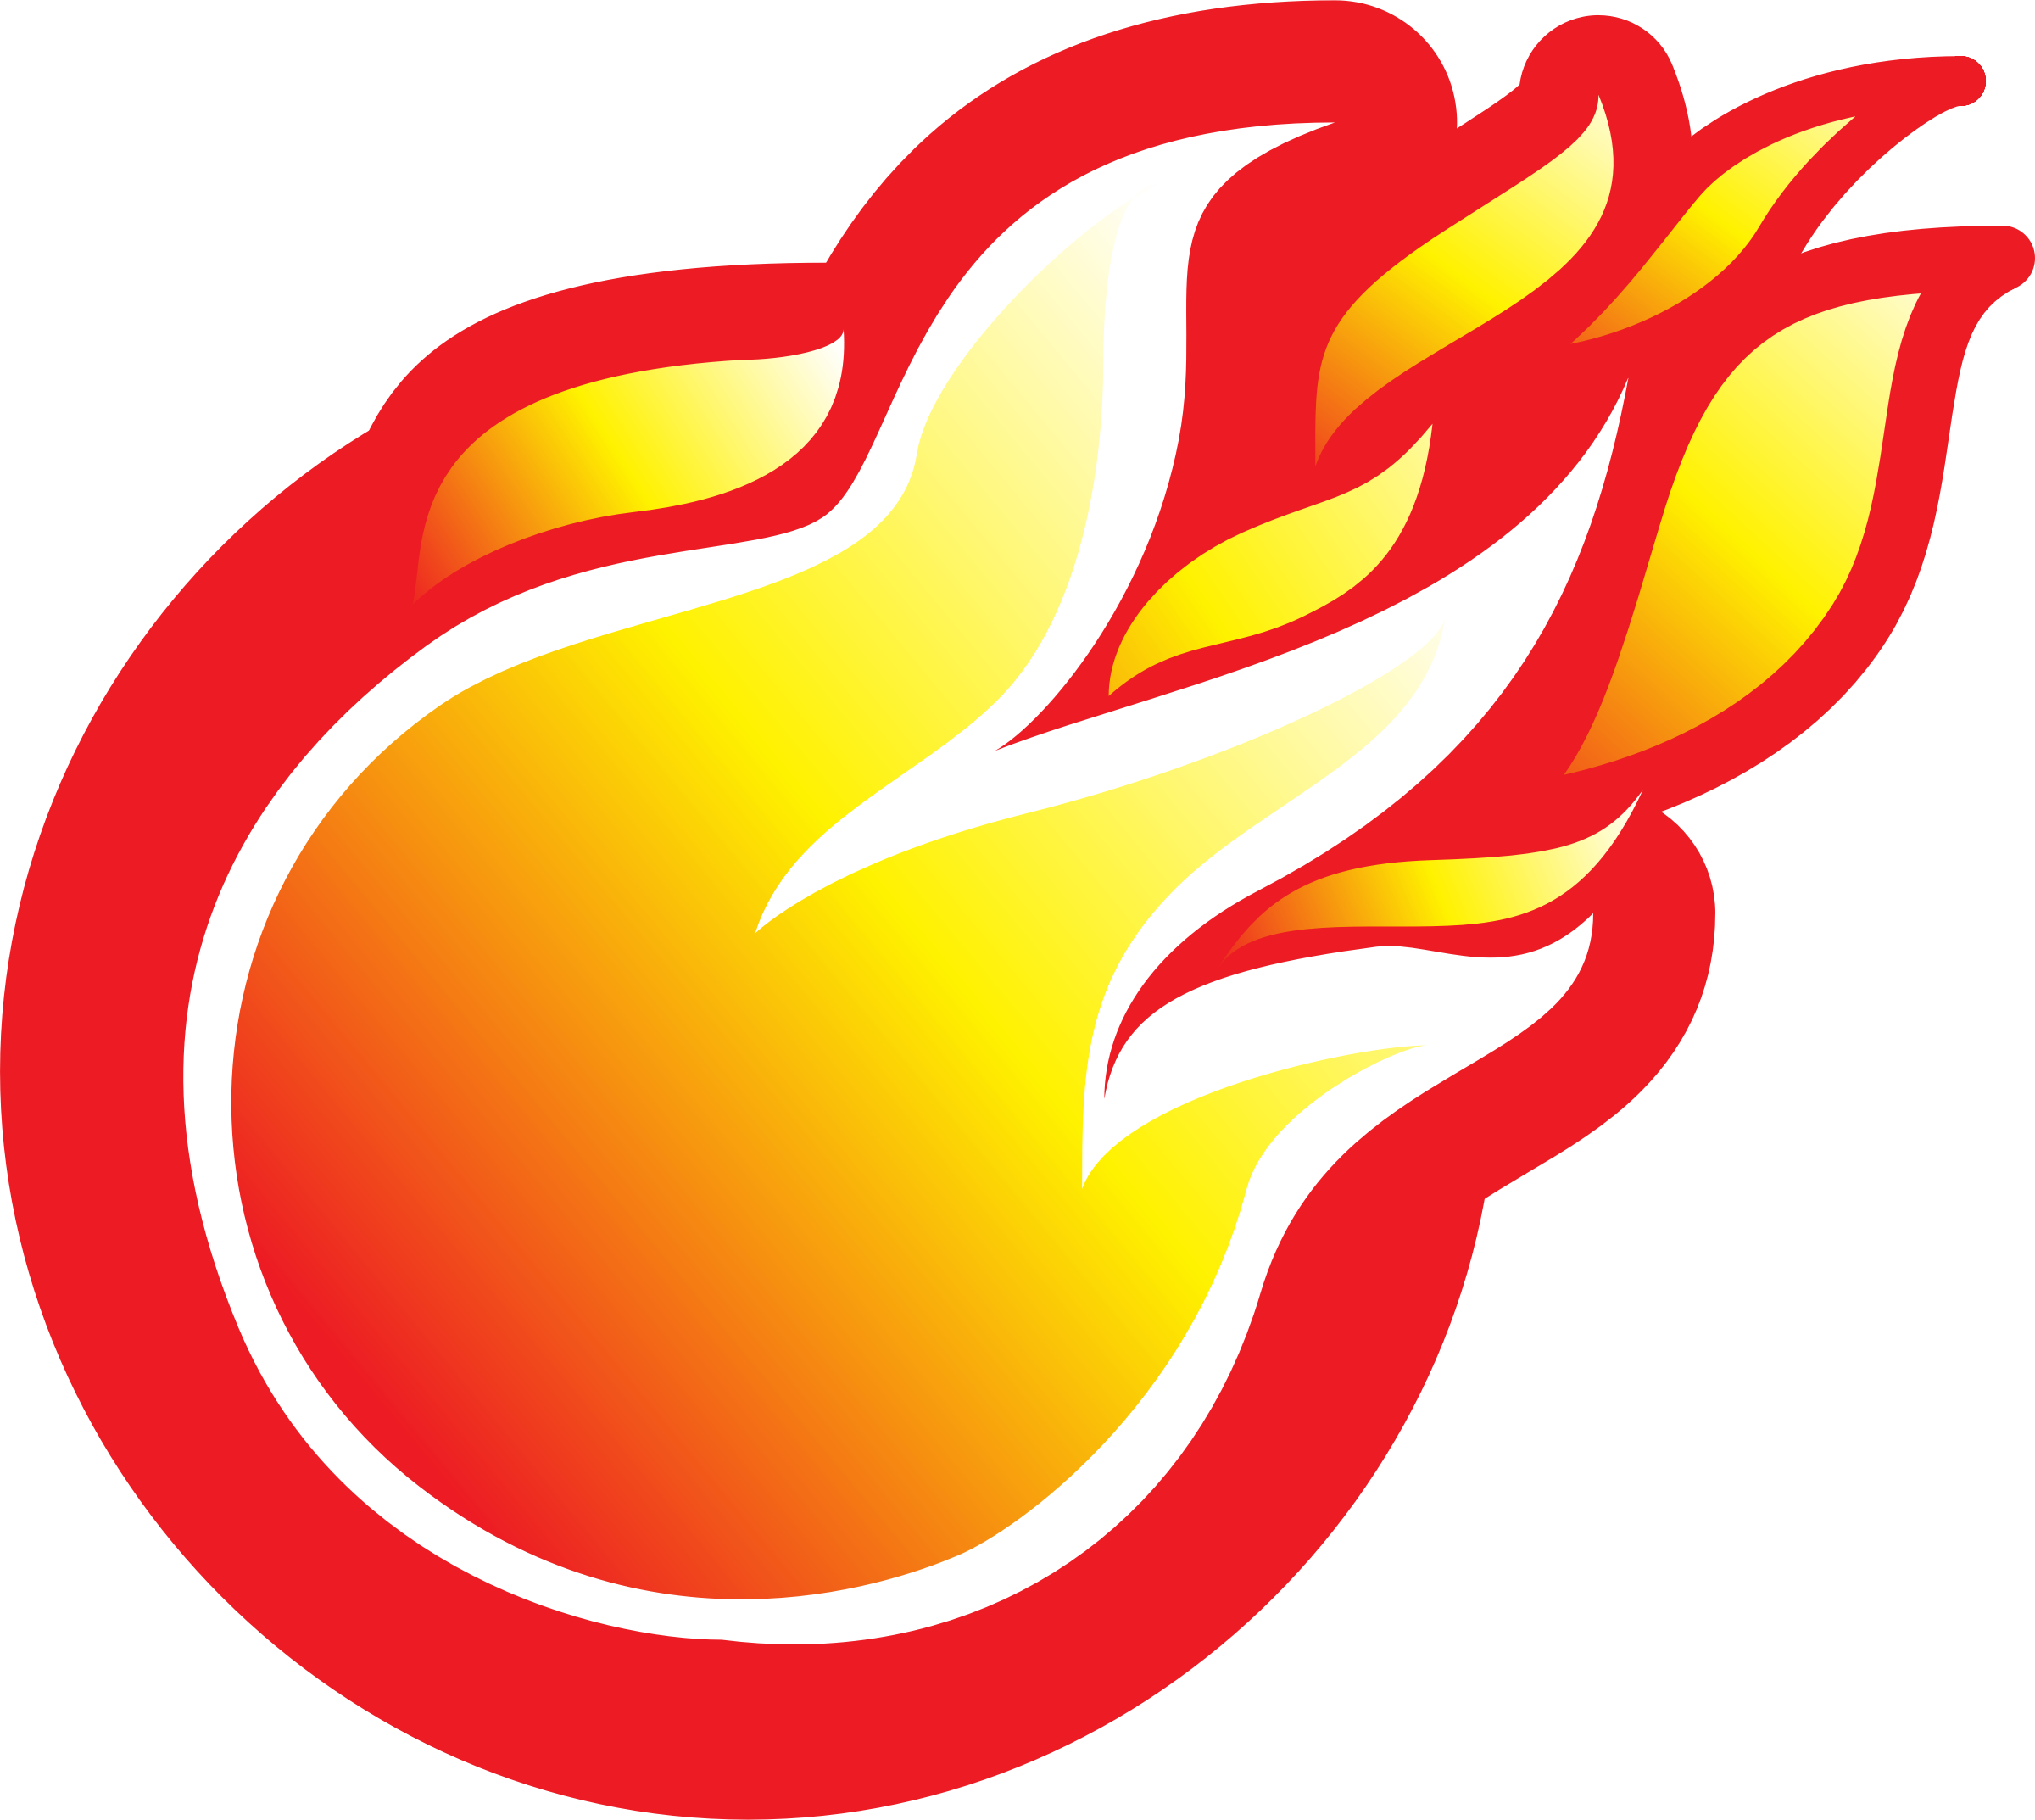 Flames clipart powerpoint. Flame clip art for